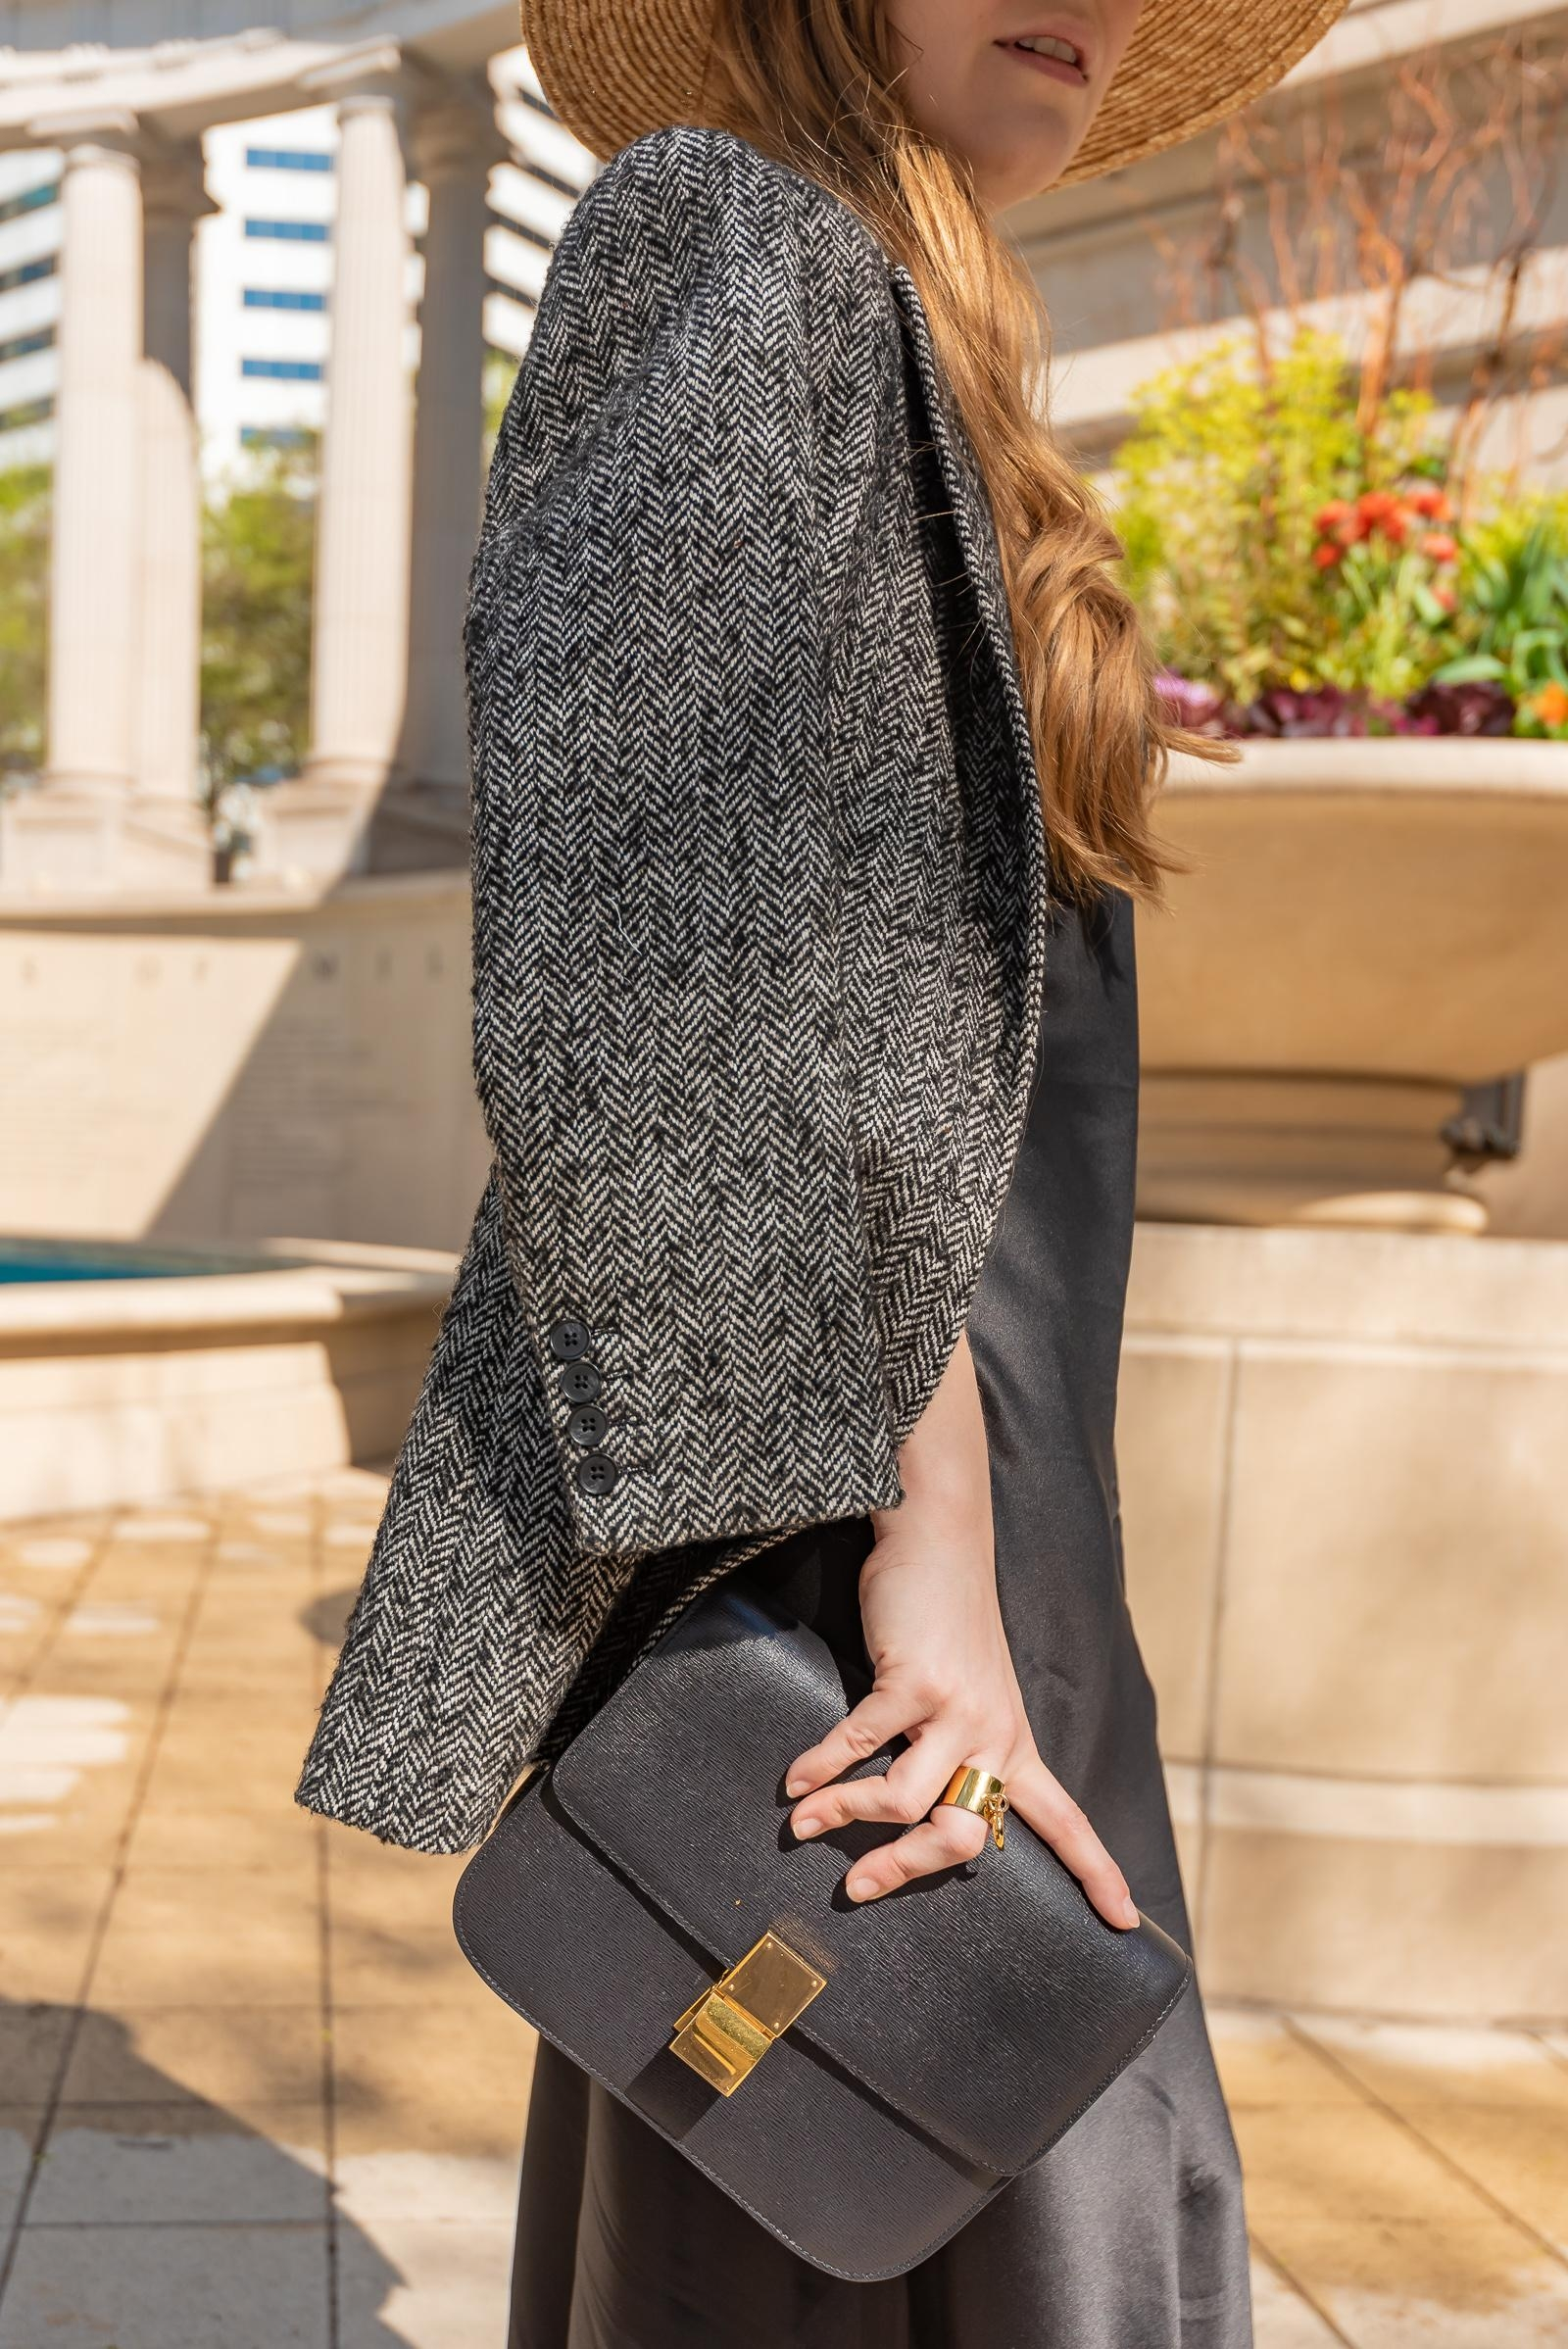 Black Silk Spring Outfit